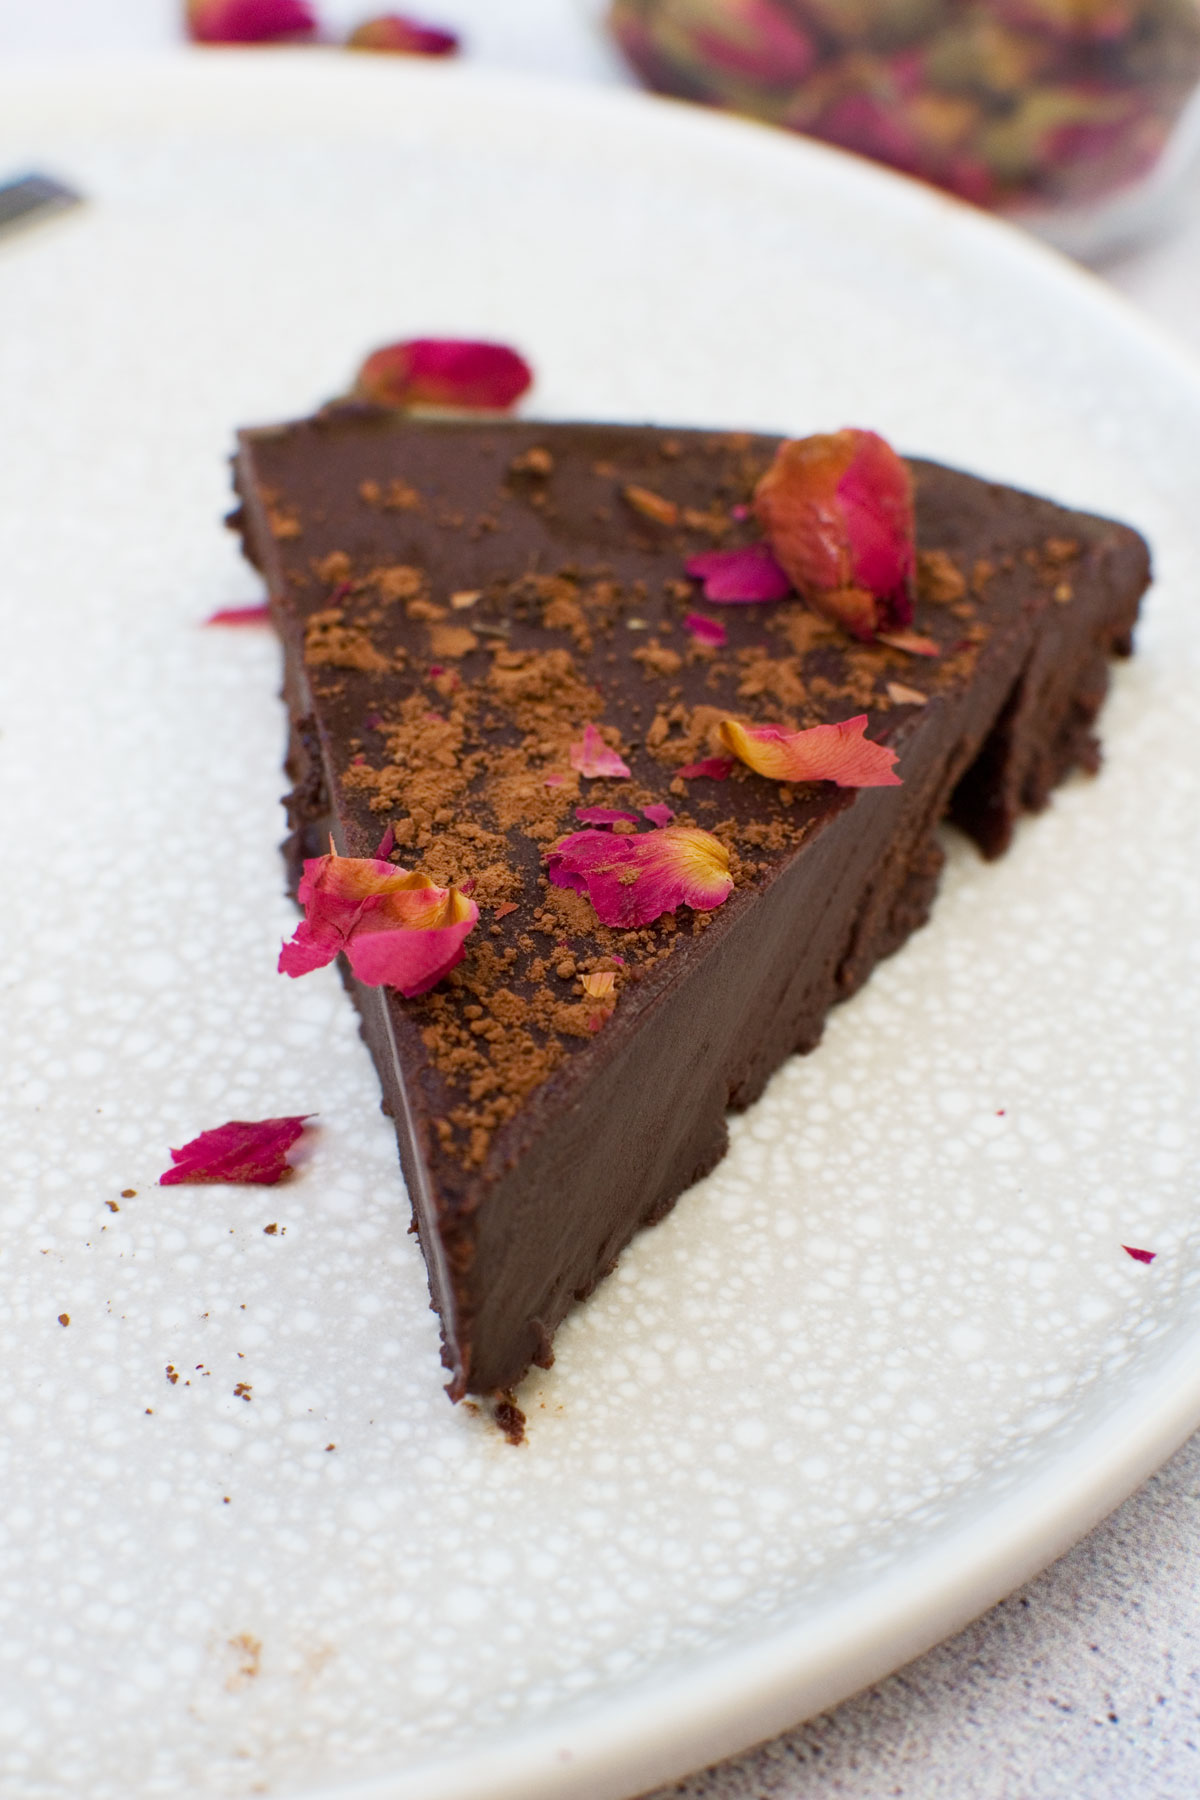 A slice of no bake chocolate truffle cake on a plate decorated with rose buds